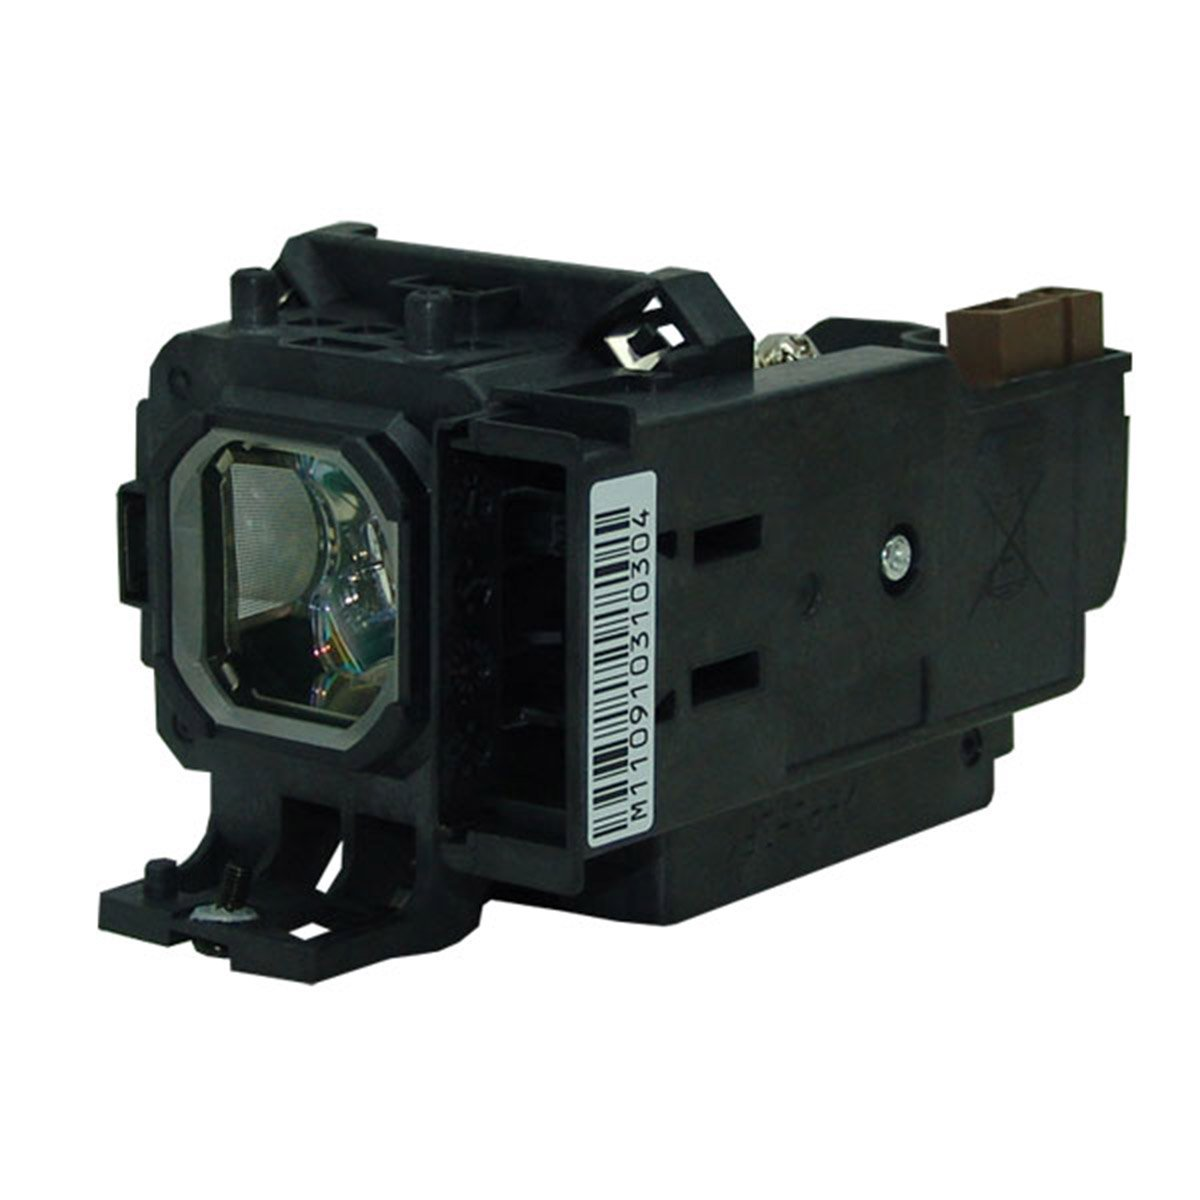 OEM Canon Projector Lamp, Replaces Part Number LV-LP26 / 1297B001AA with Housing